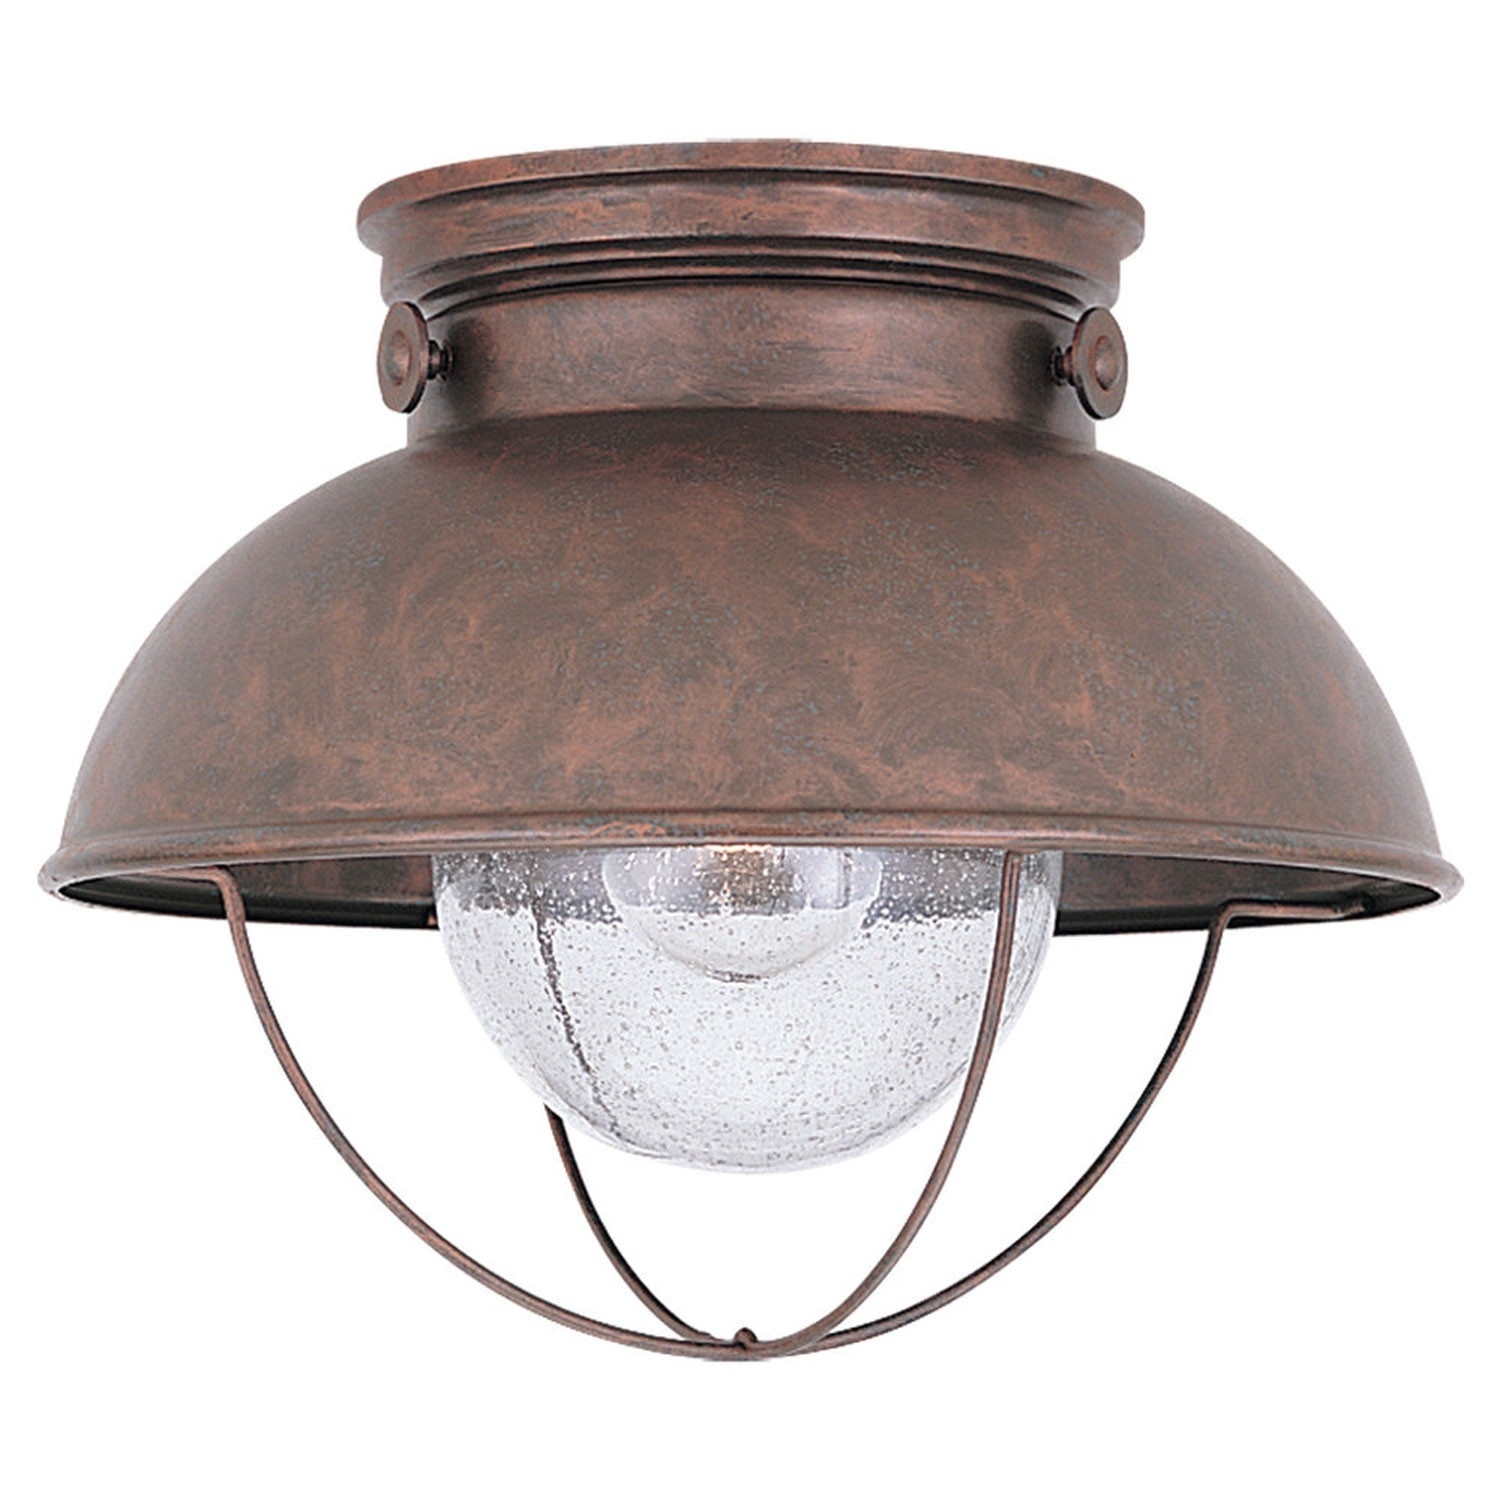 Popular Photo of Outdoor Ceiling Lights From Australia